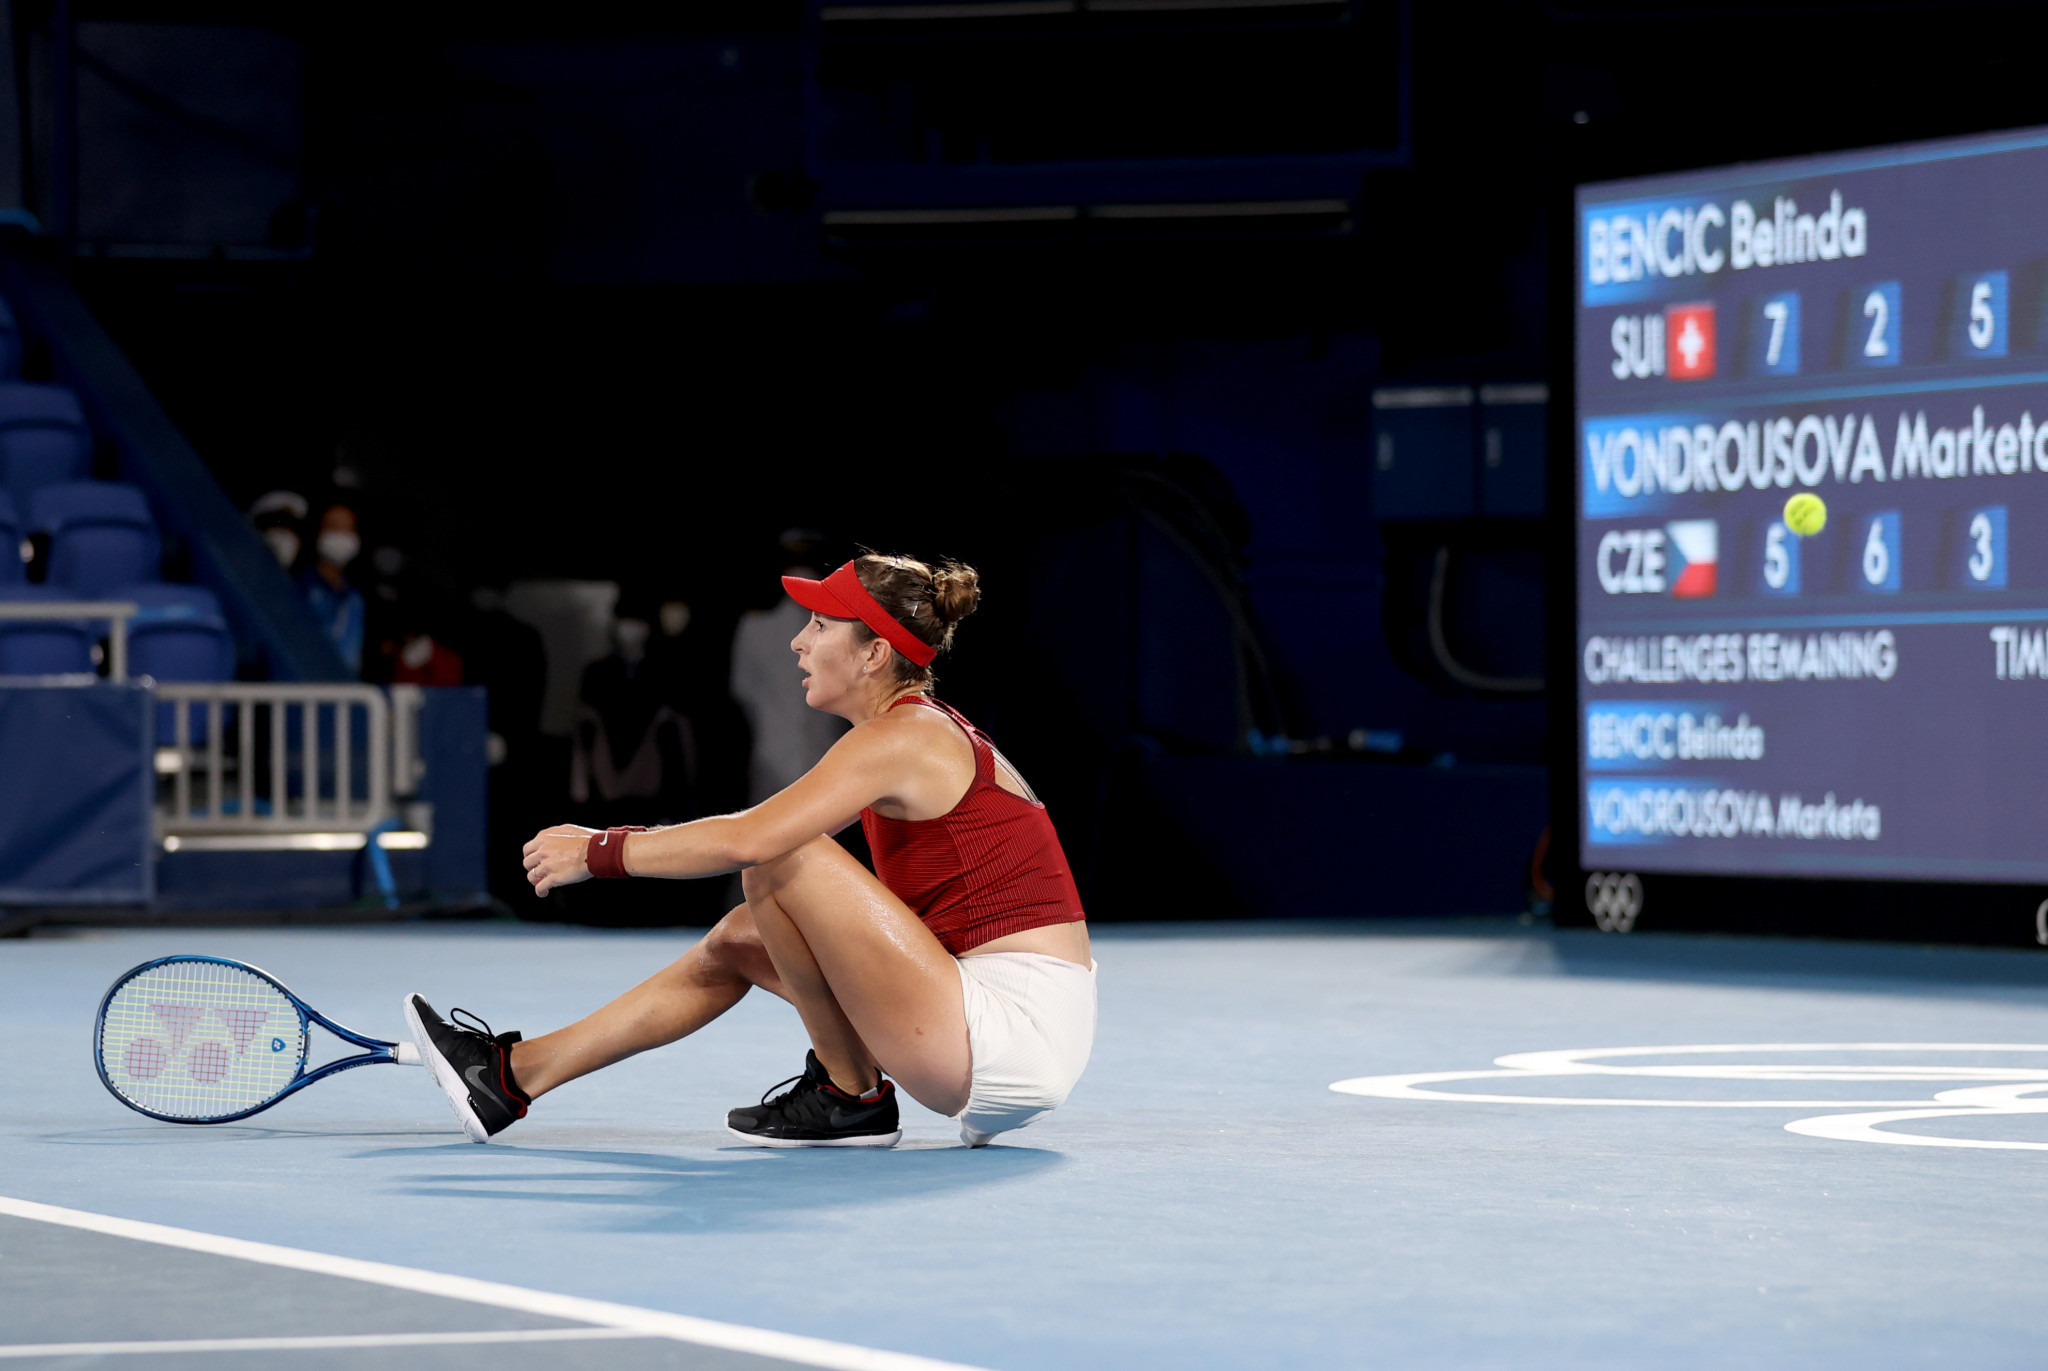 Switzerland's Belinda Bencic reacts to winning the women's singles tennis gold medal match in three sets ©Getty Images